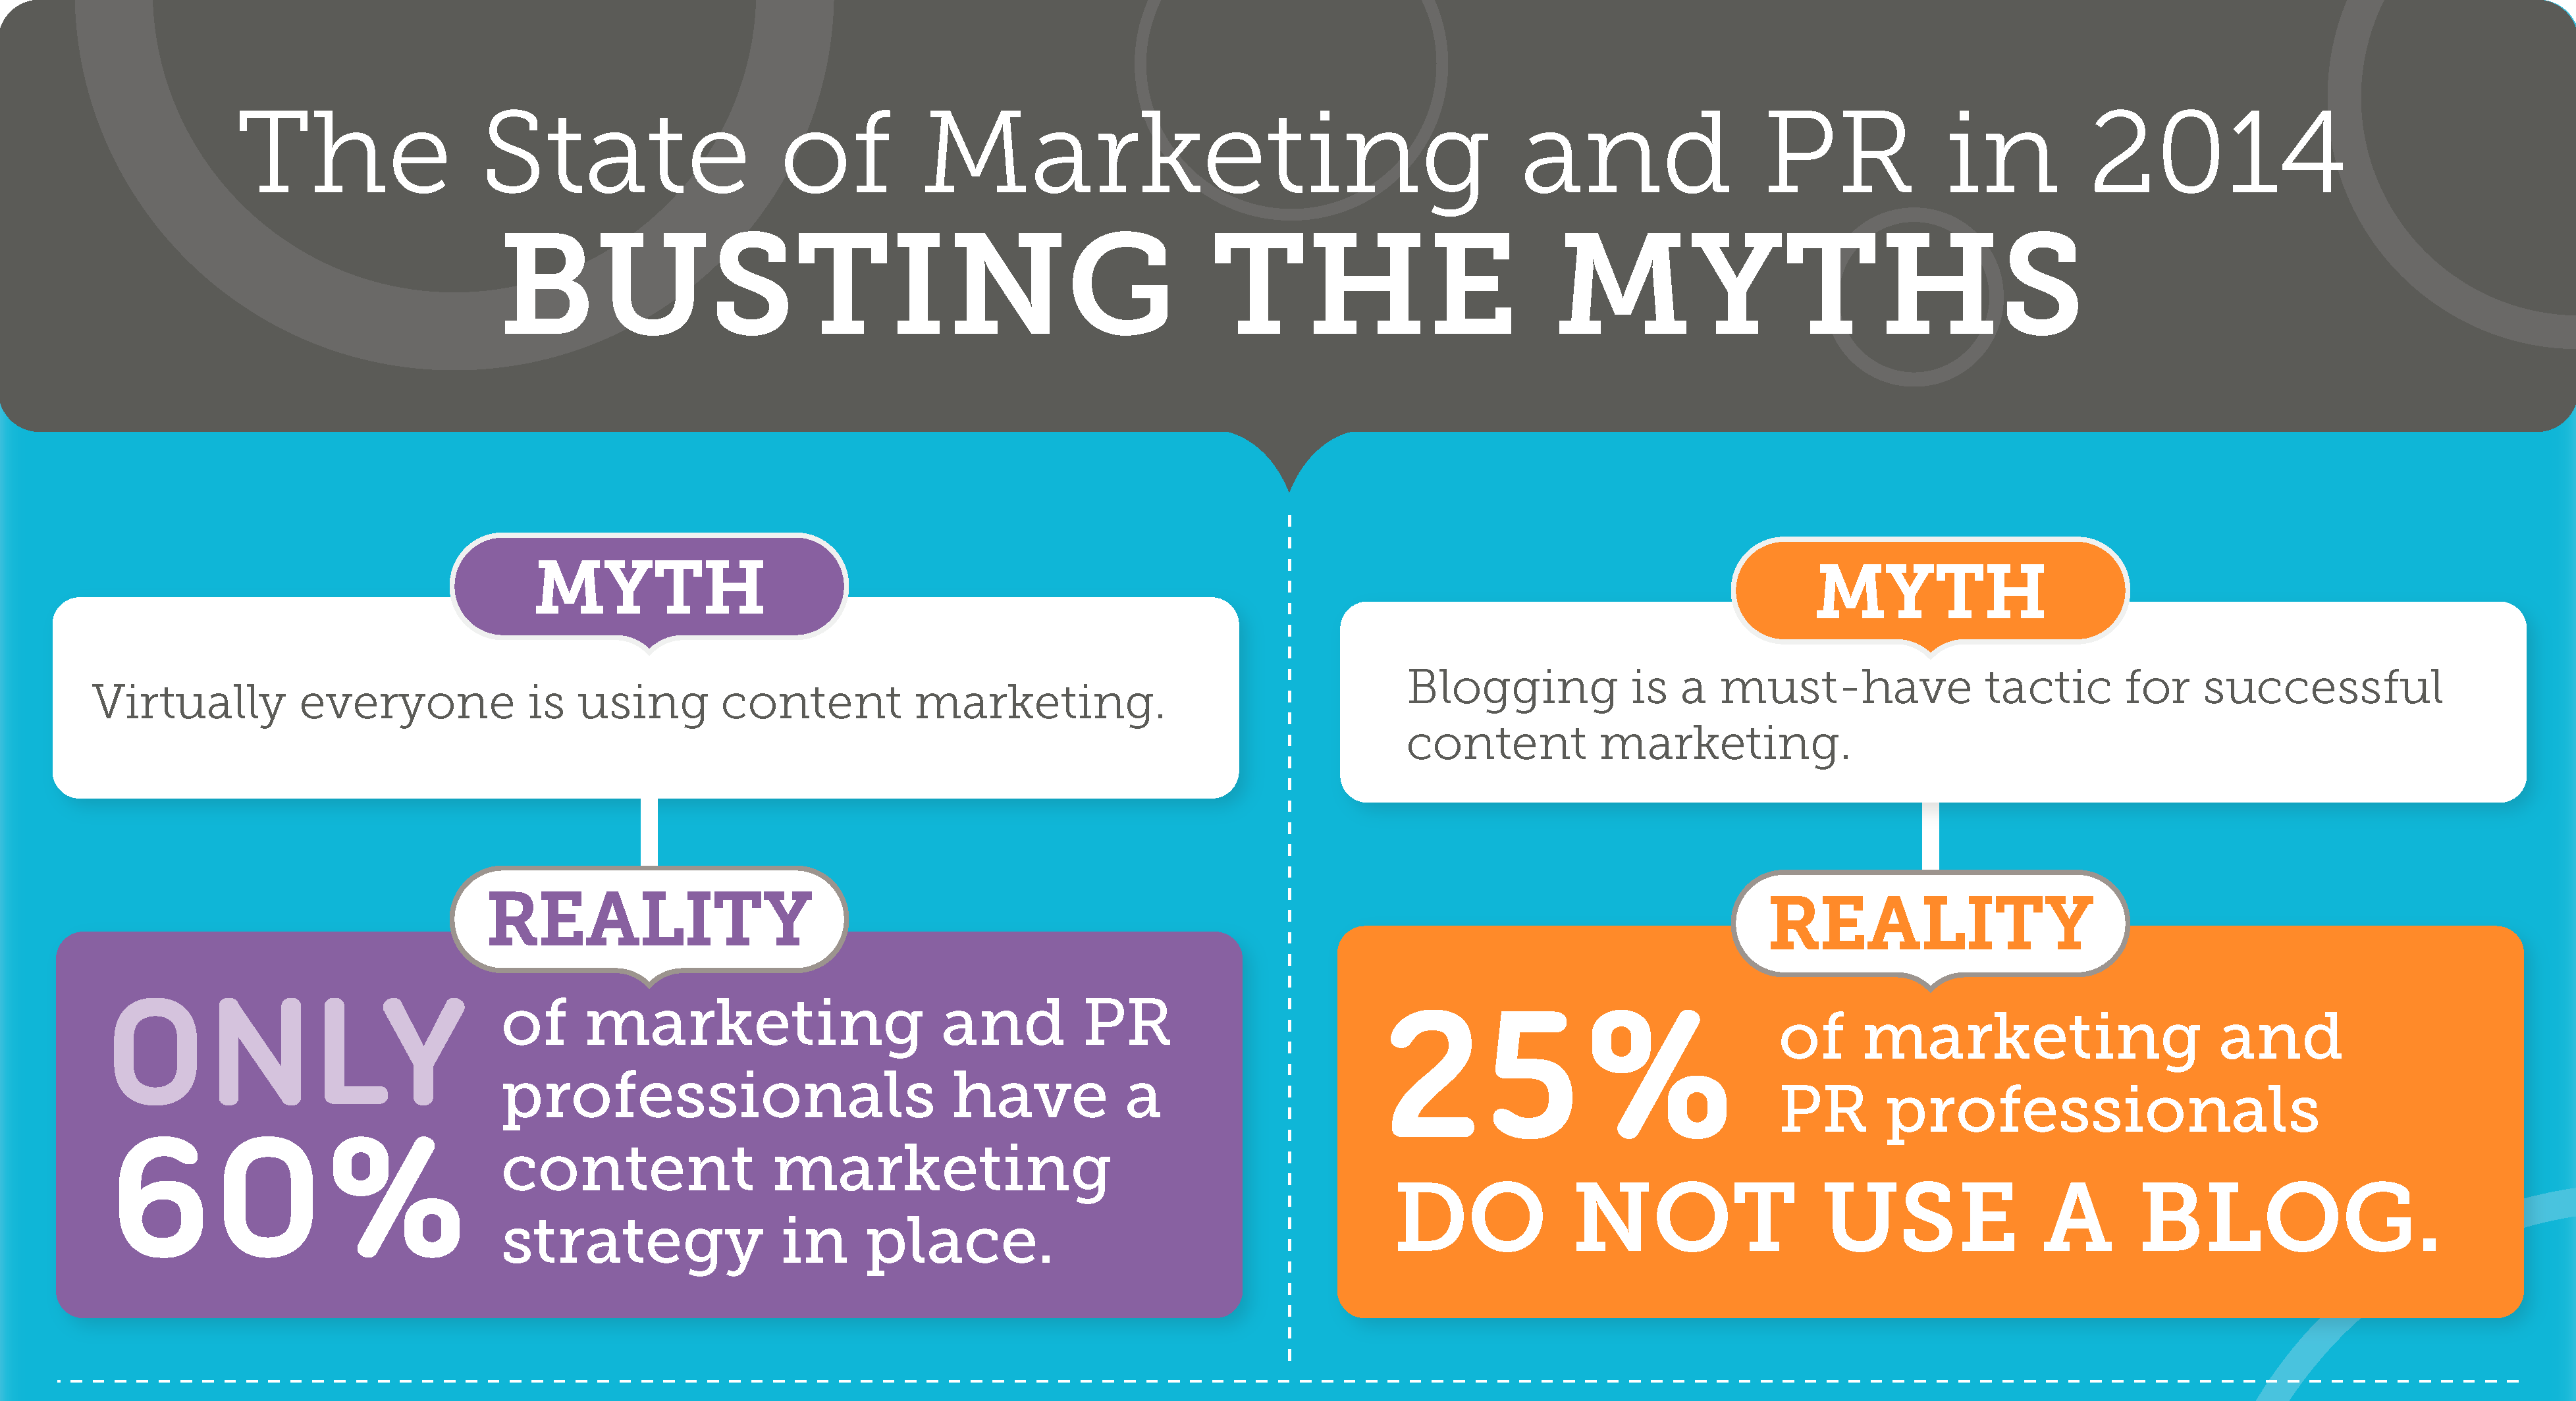 The State of Marketing and PR